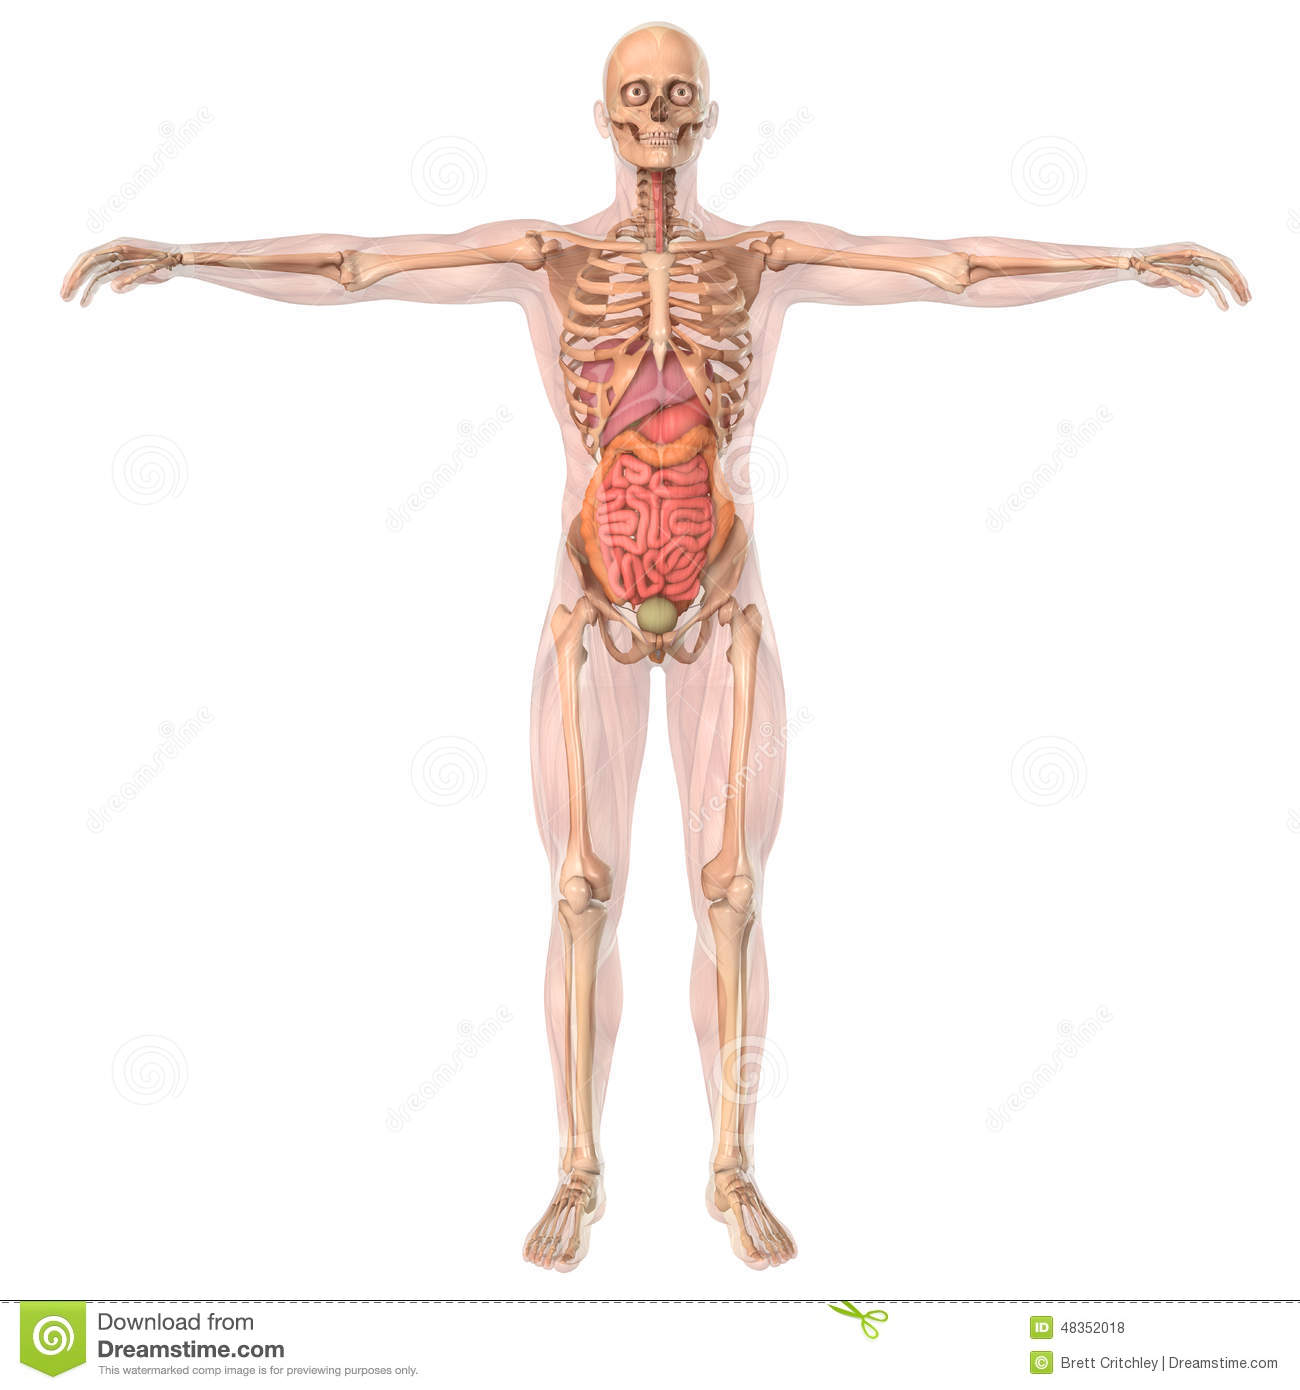 Diagram Of Human Body Bones Organs - DIY Enthusiasts Wiring Diagrams •